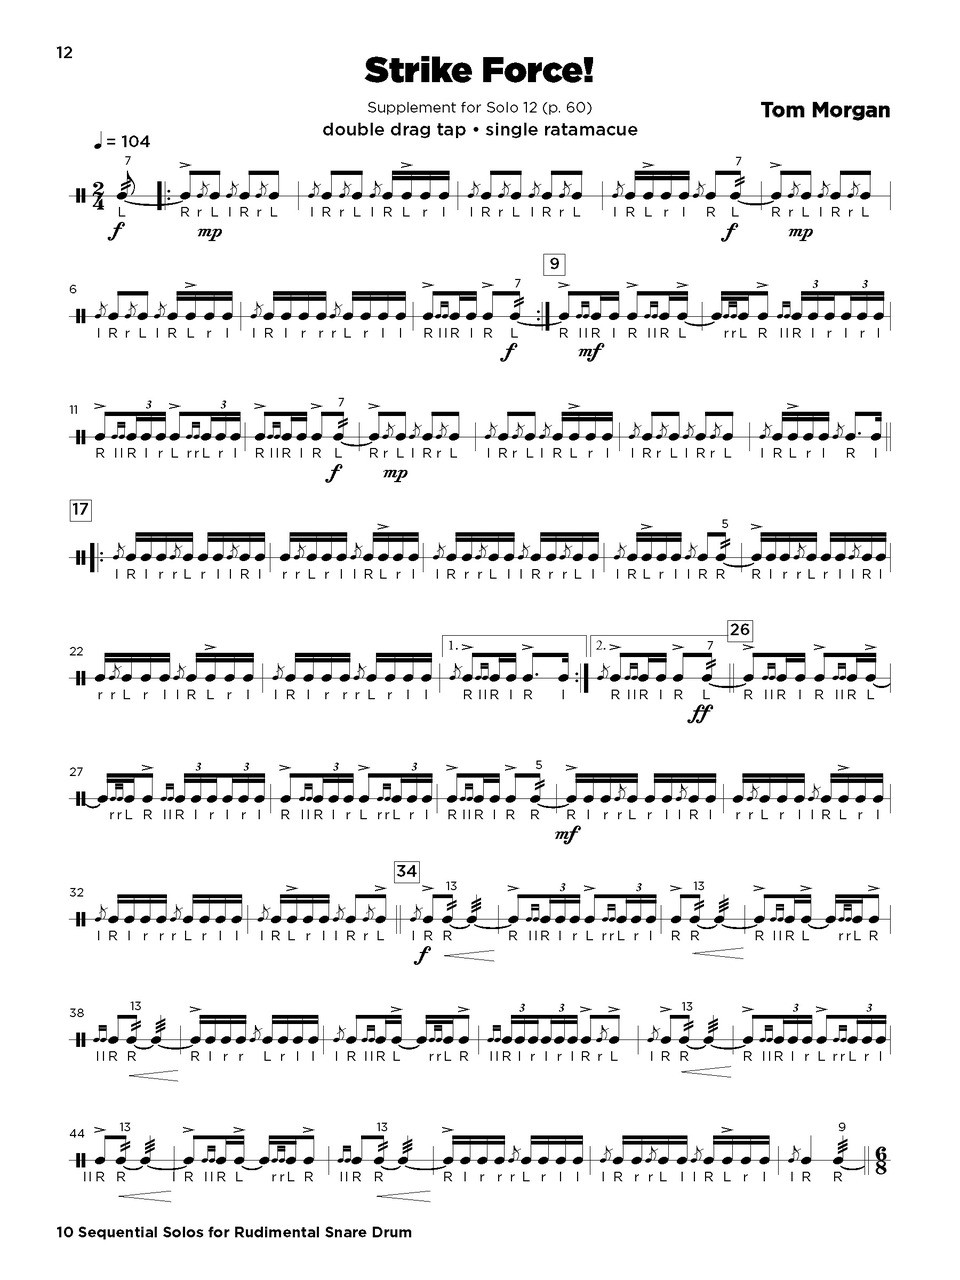 10 Sequential Solos For Rudimental Snare Drum - C. Alan ...